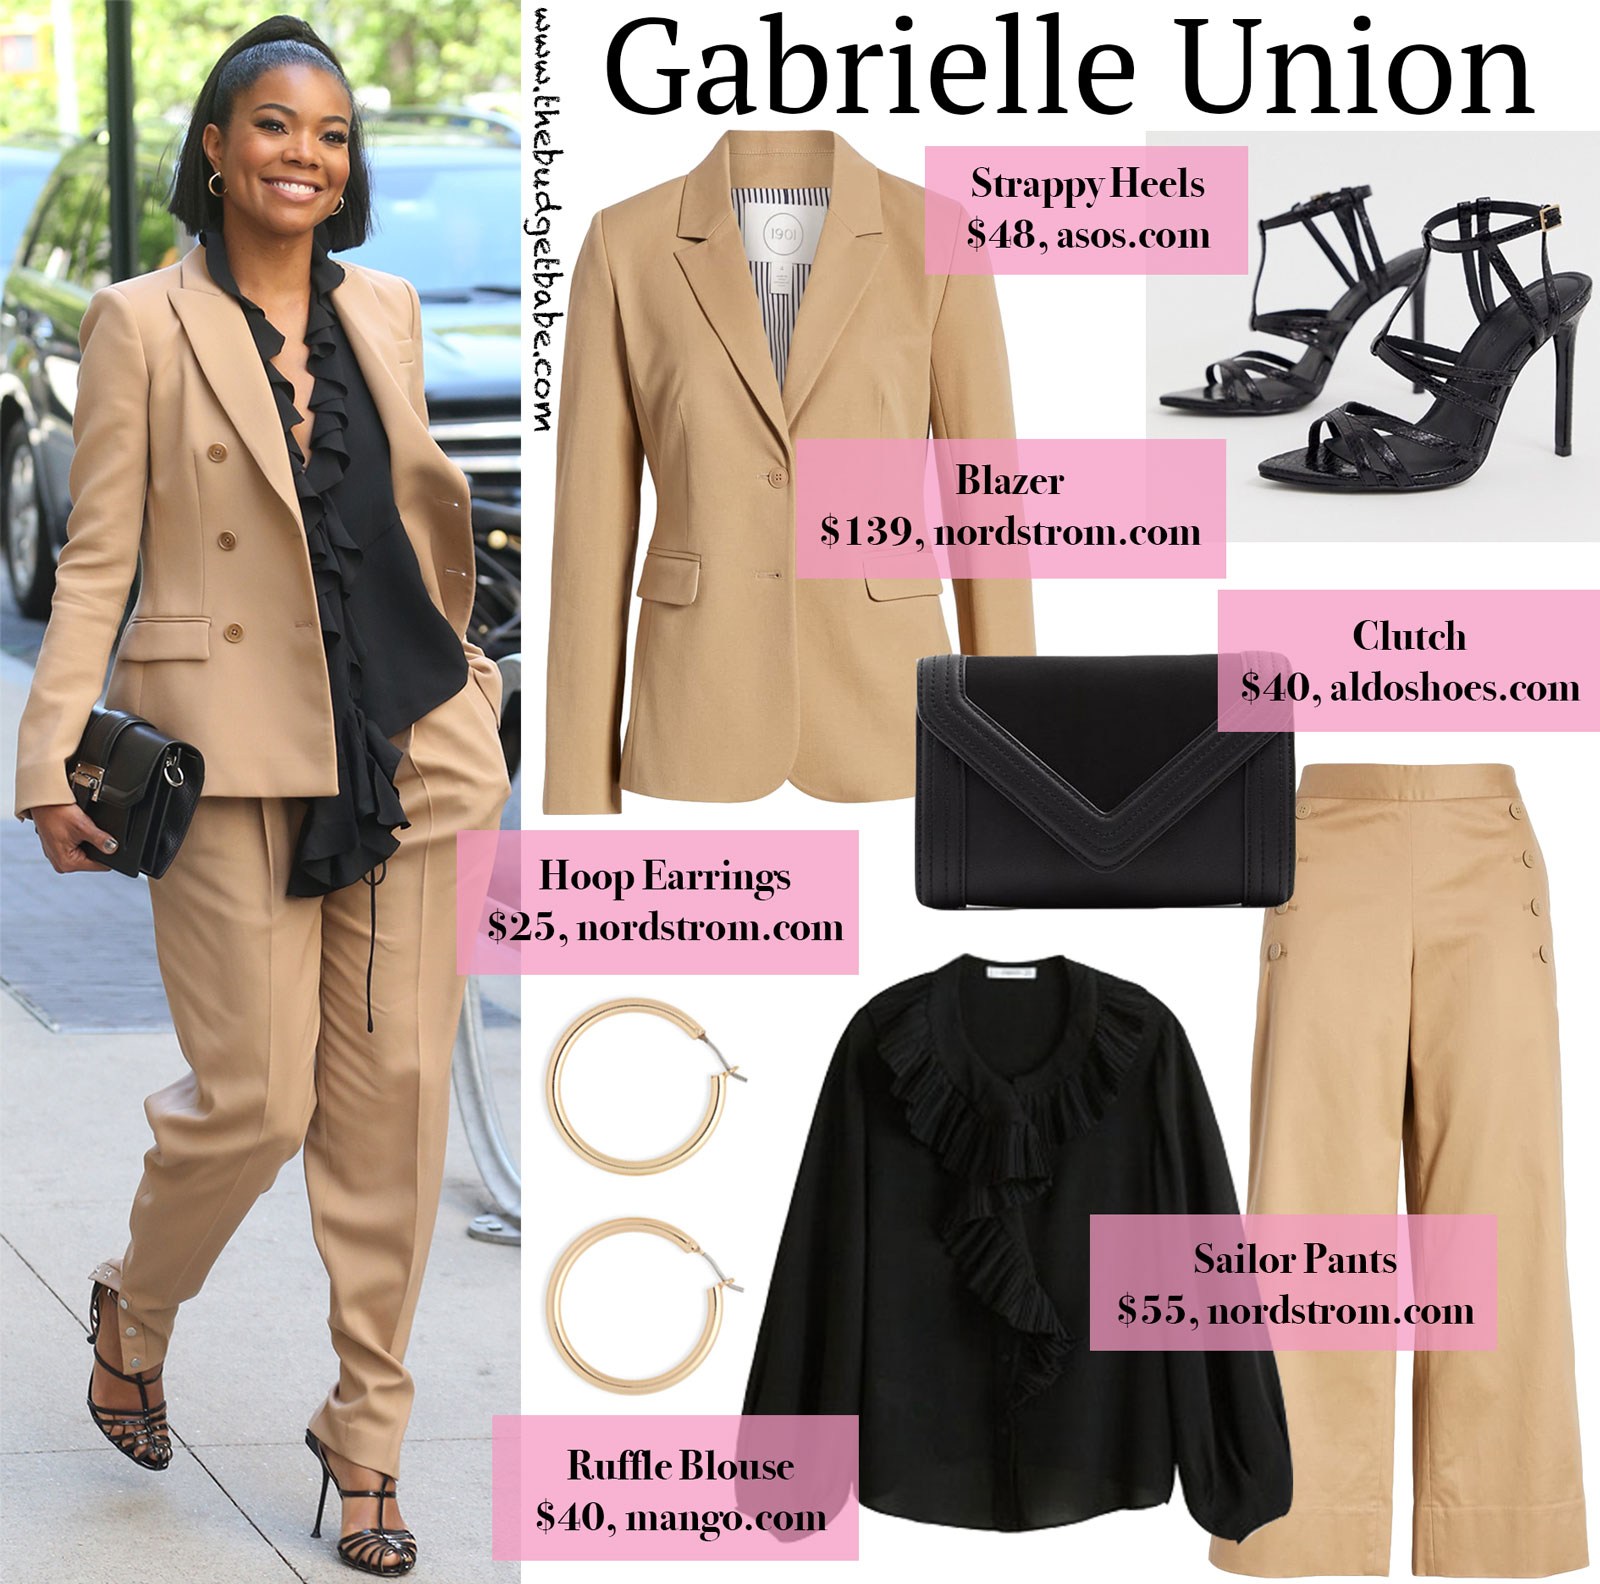 Gabrielle Union Tan Suit Look for Less